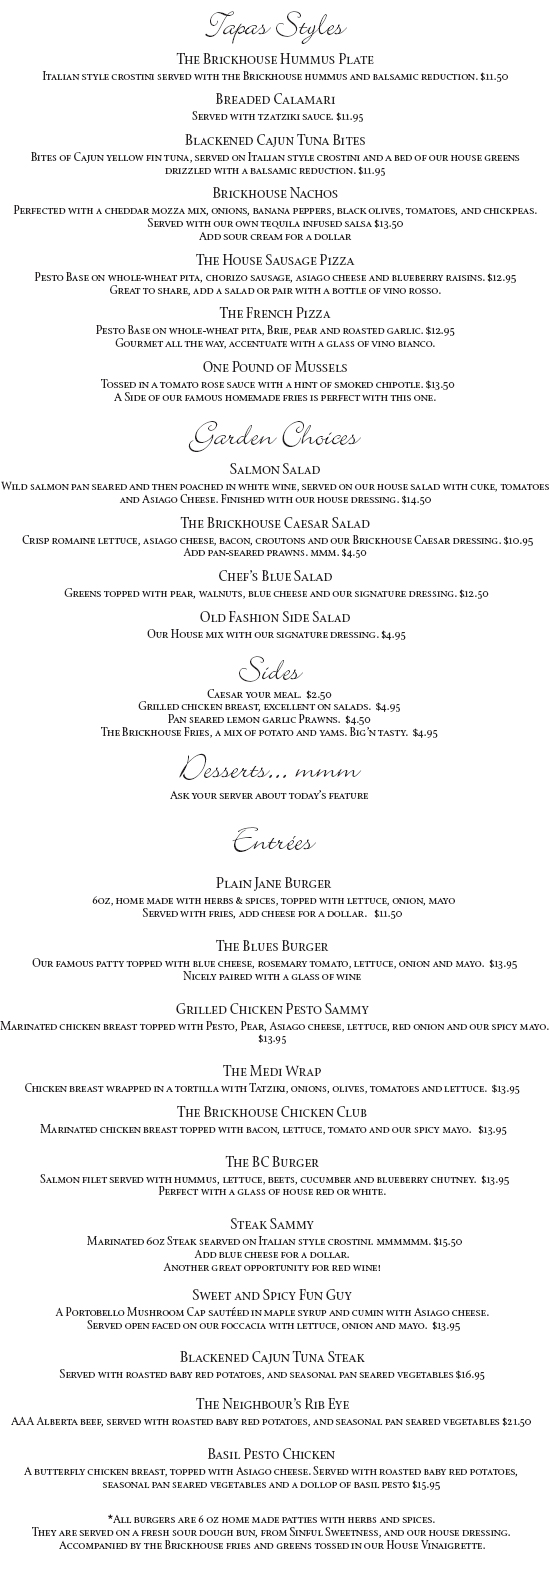 The Brickhouse Dinner Menu